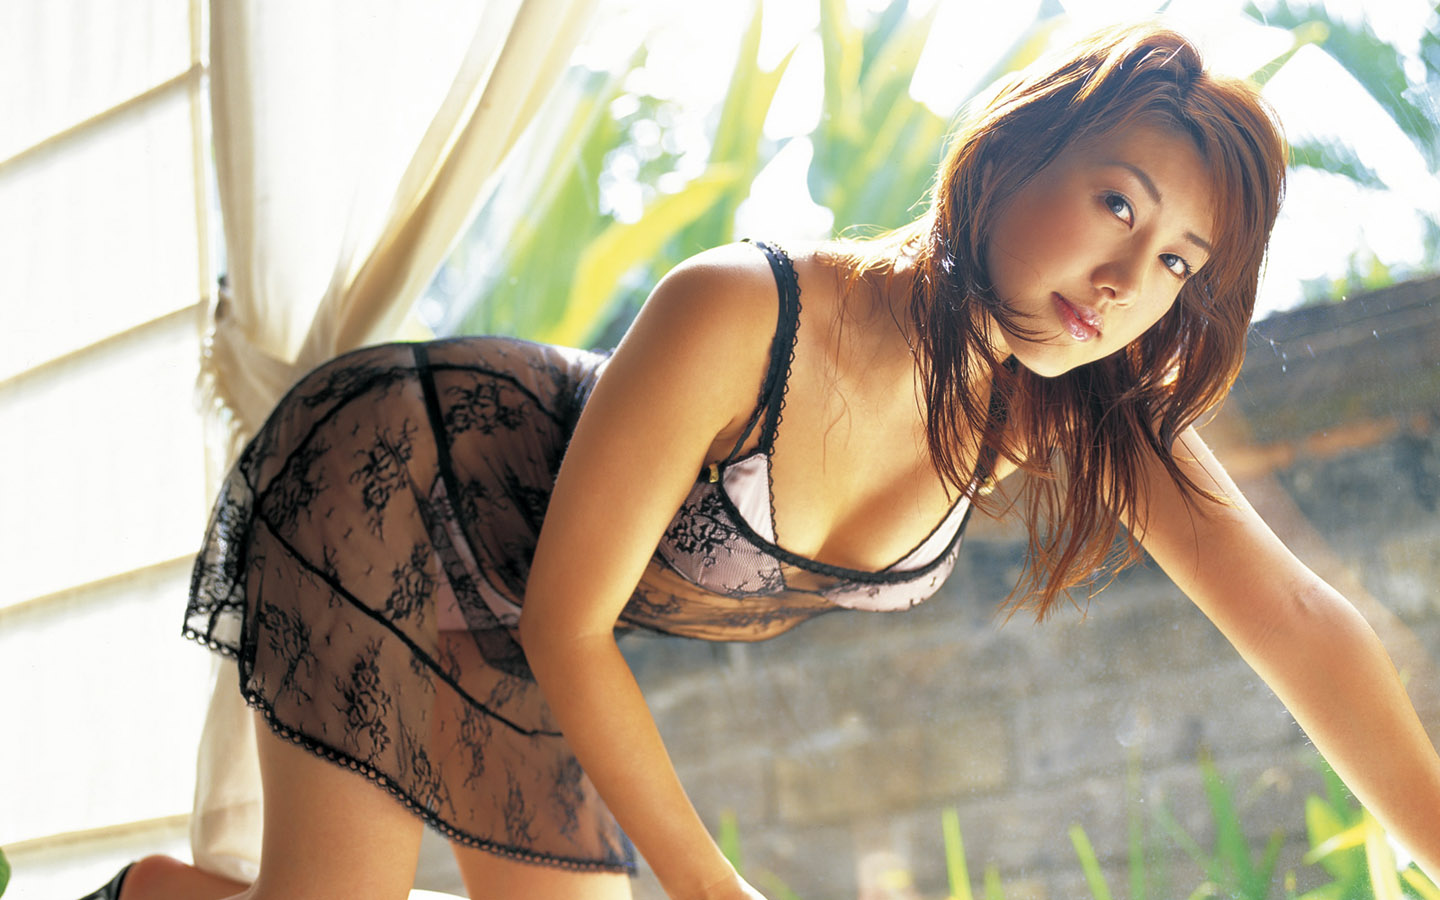 Asian Girl Sexy Lingerie Wallpaper. Categorie Babes